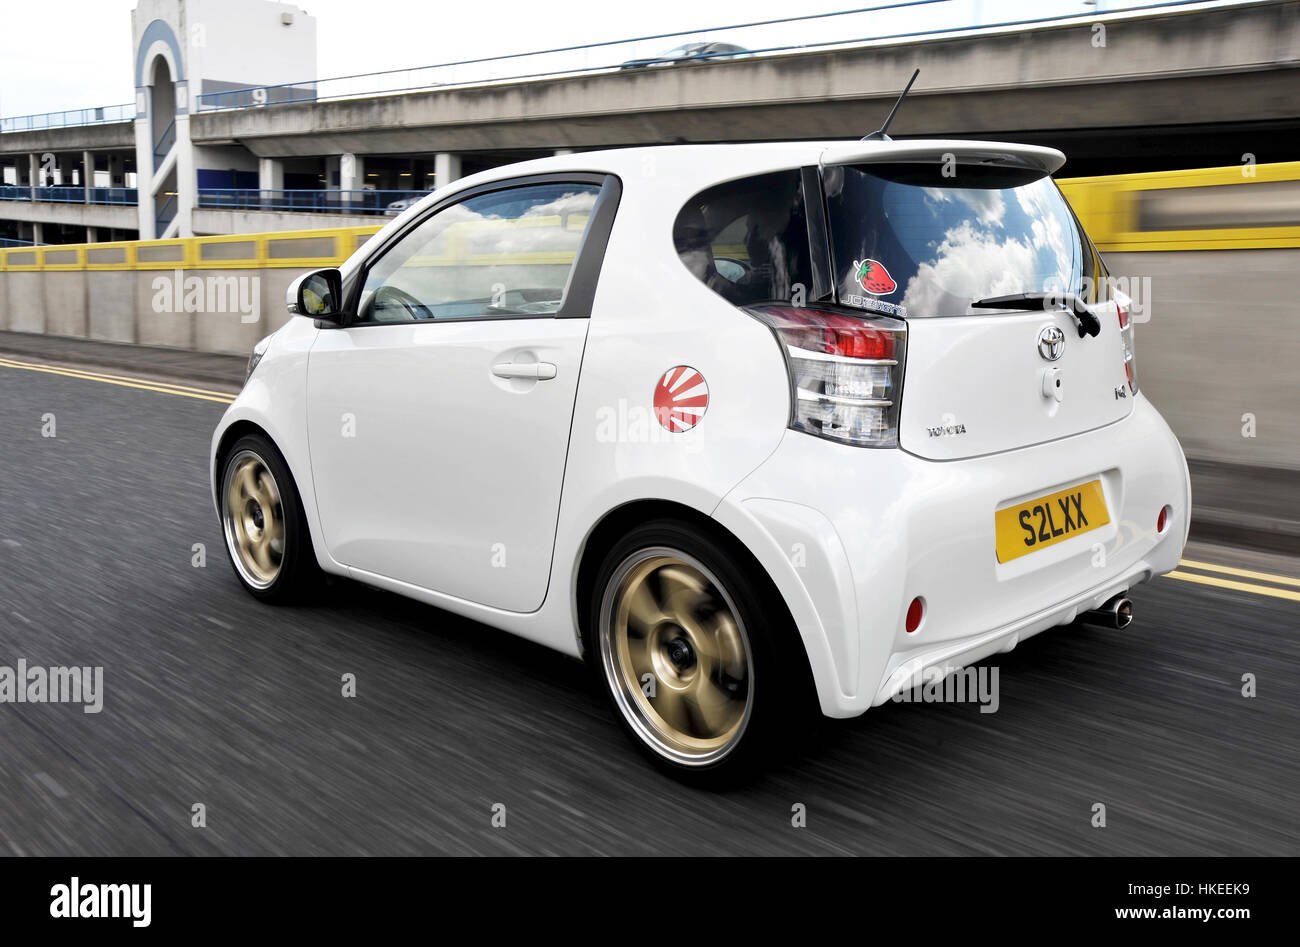 modified toyota iq sub compact city car stock photo royalty free image 132469885 alamy. Black Bedroom Furniture Sets. Home Design Ideas